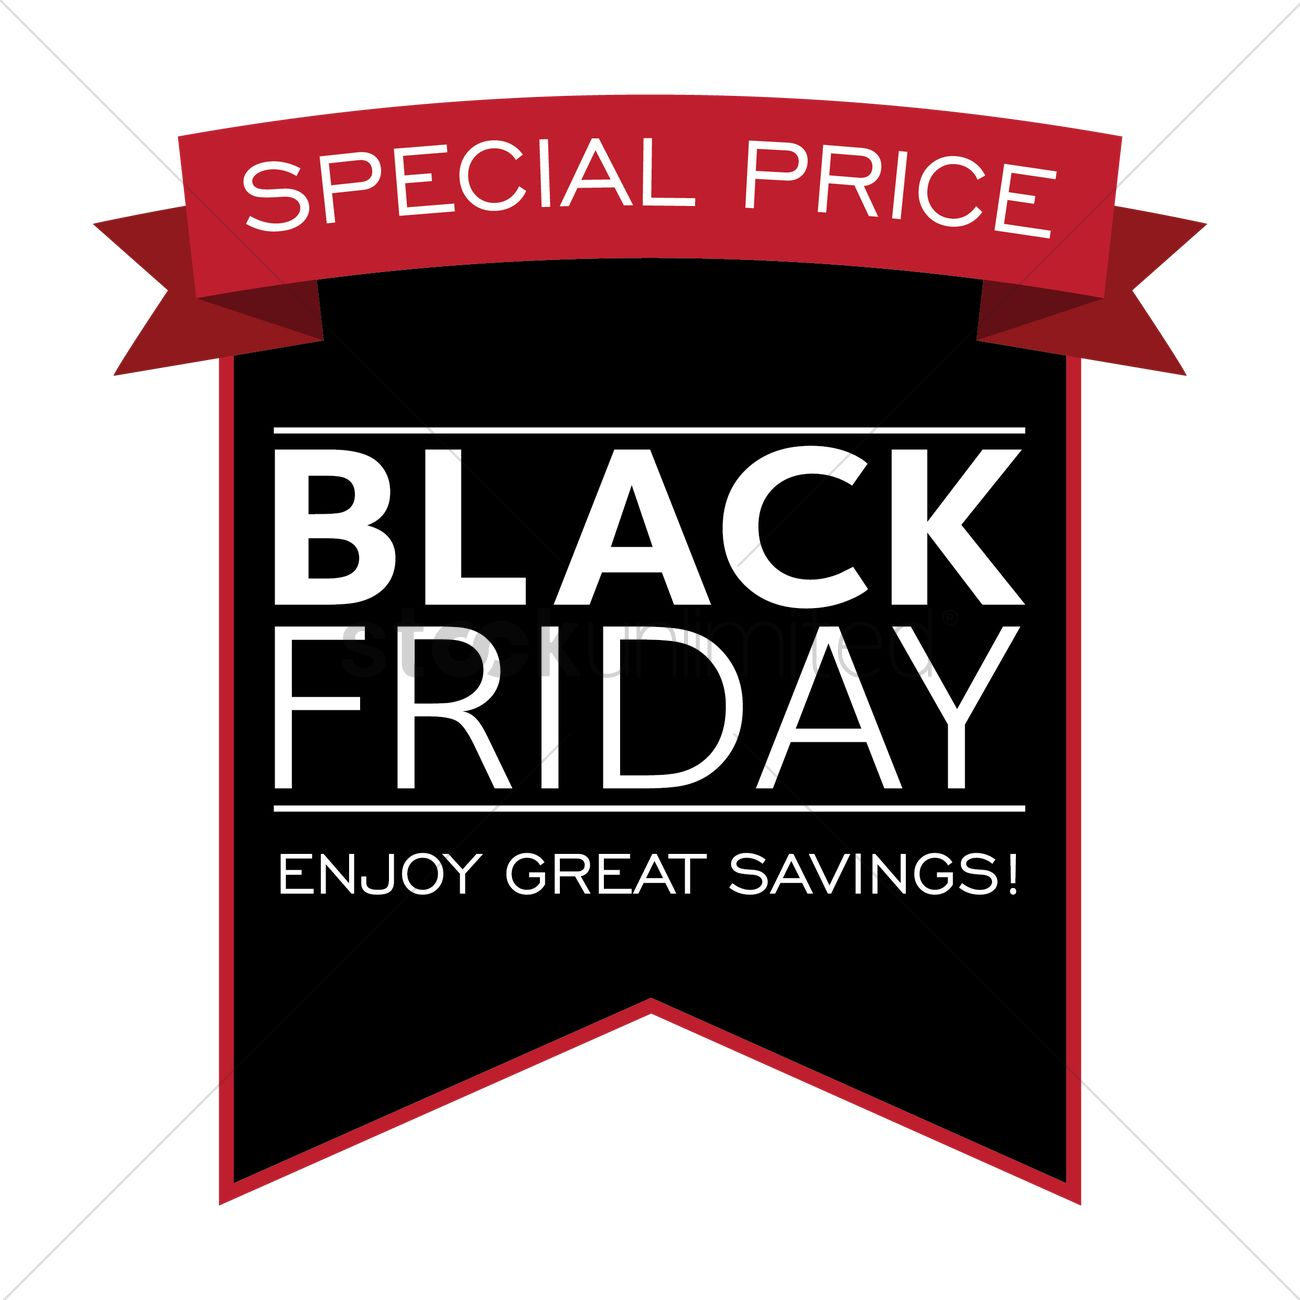 Friday Sale Black Friday Sale Banner Vector Image 1694686